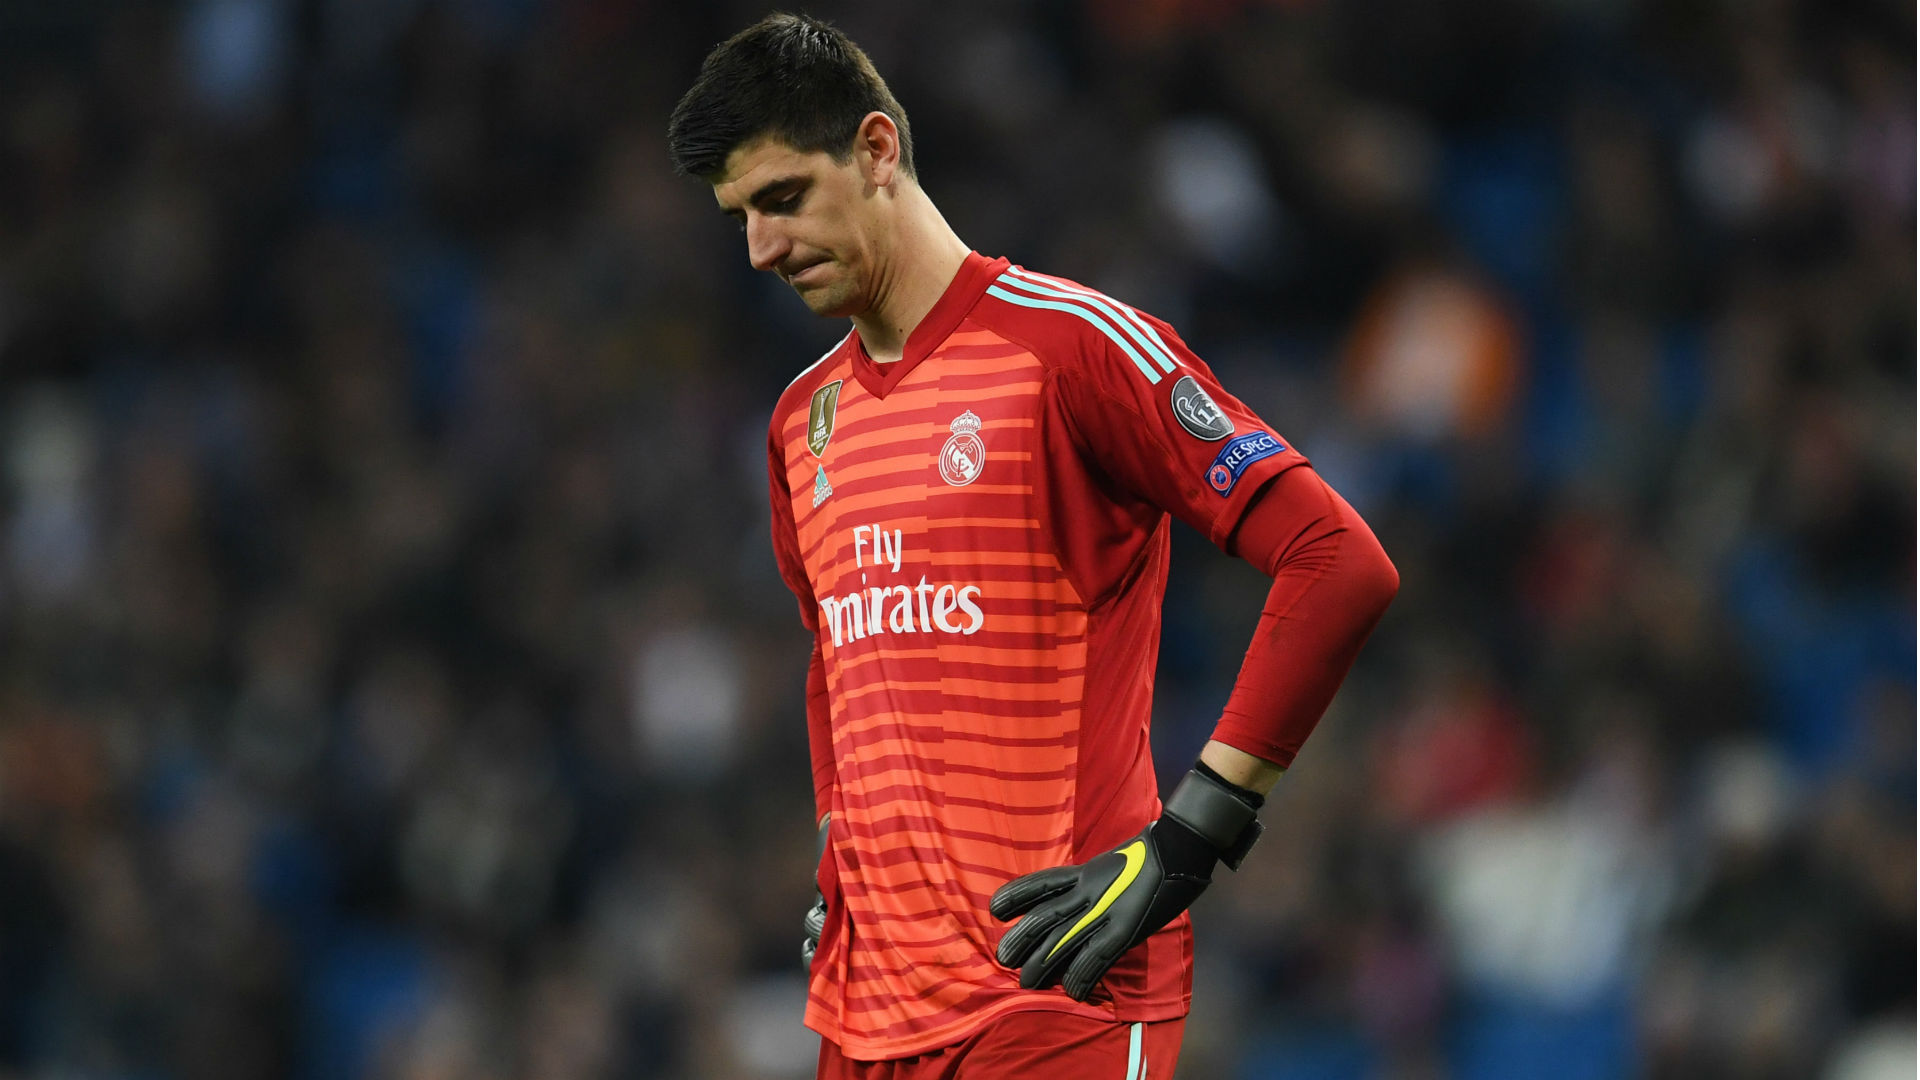 Courtois left out of Real Madrid squad following Champions League substitution